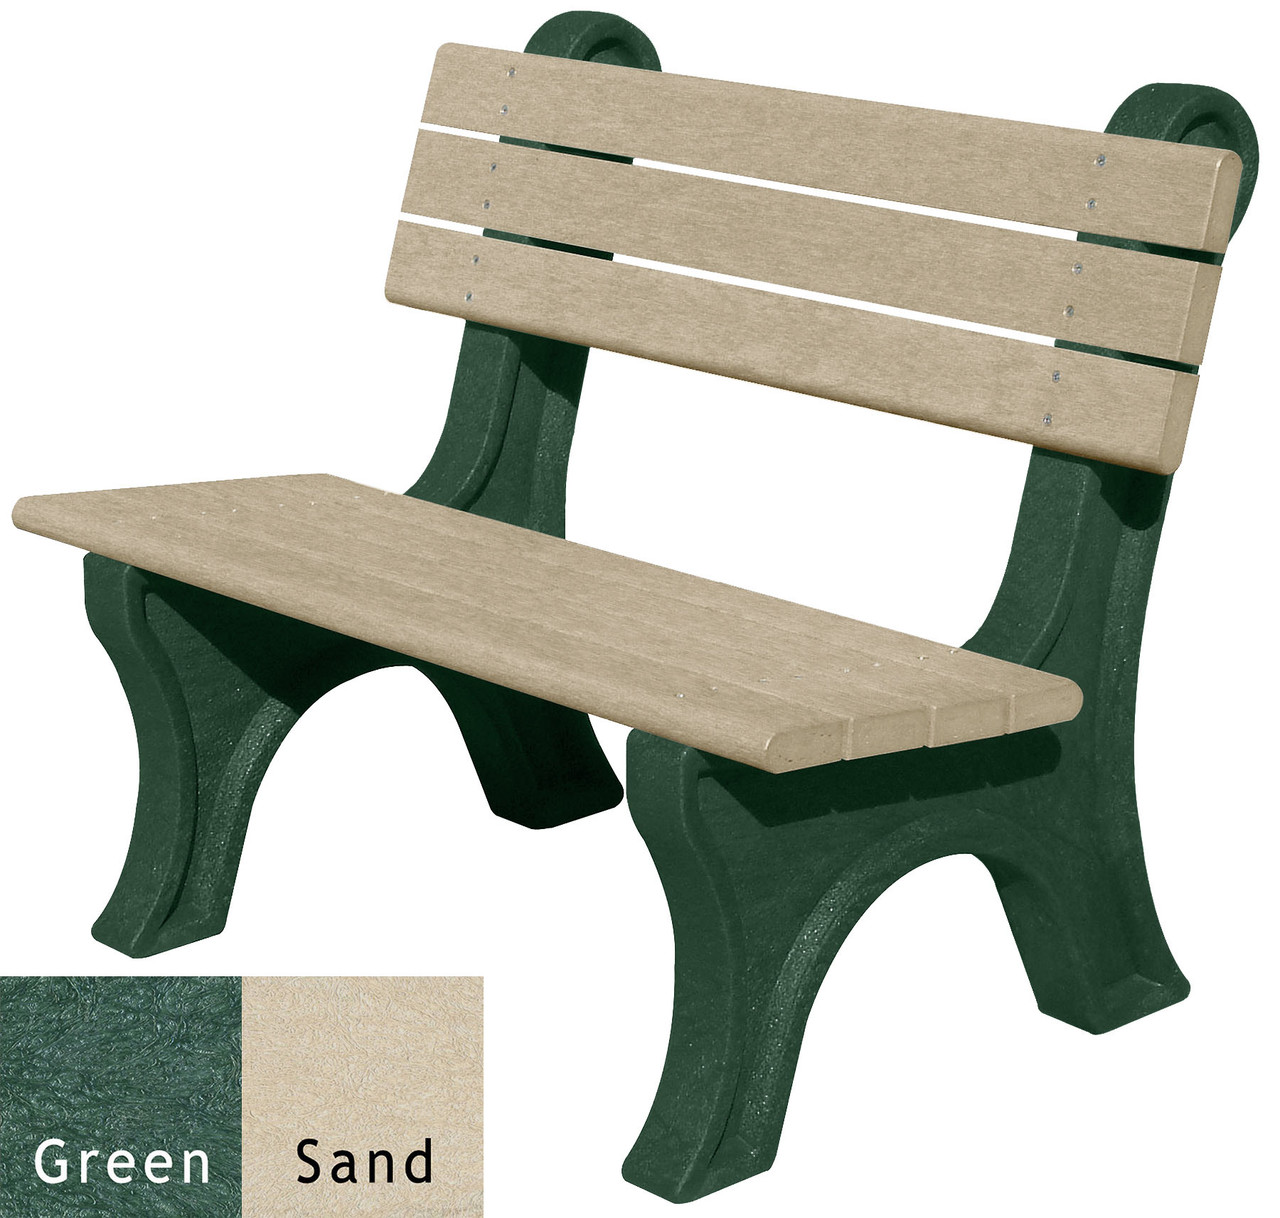 Green and Sand